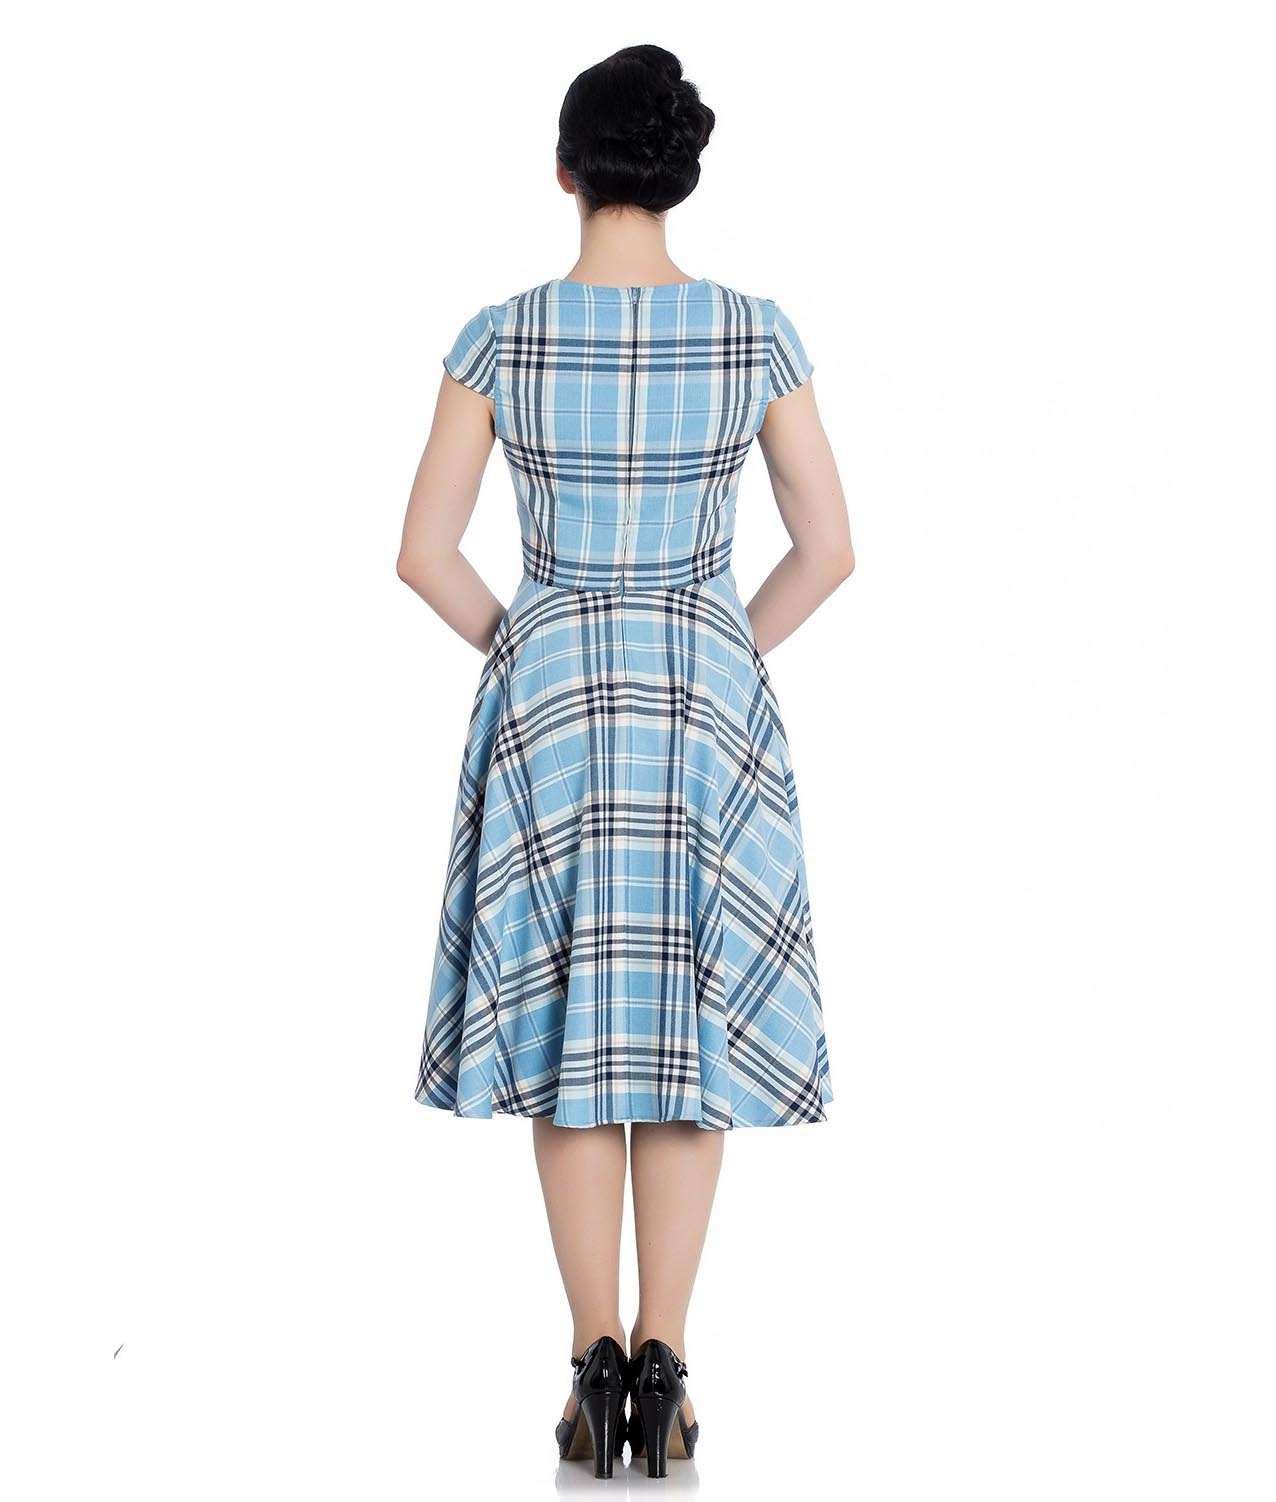 Hell-Bunny-Pinup-50s-Dress-ABERDEEN-Hogmony-Sky-Blue-amp-White-Tartan-All-Sizes thumbnail 17